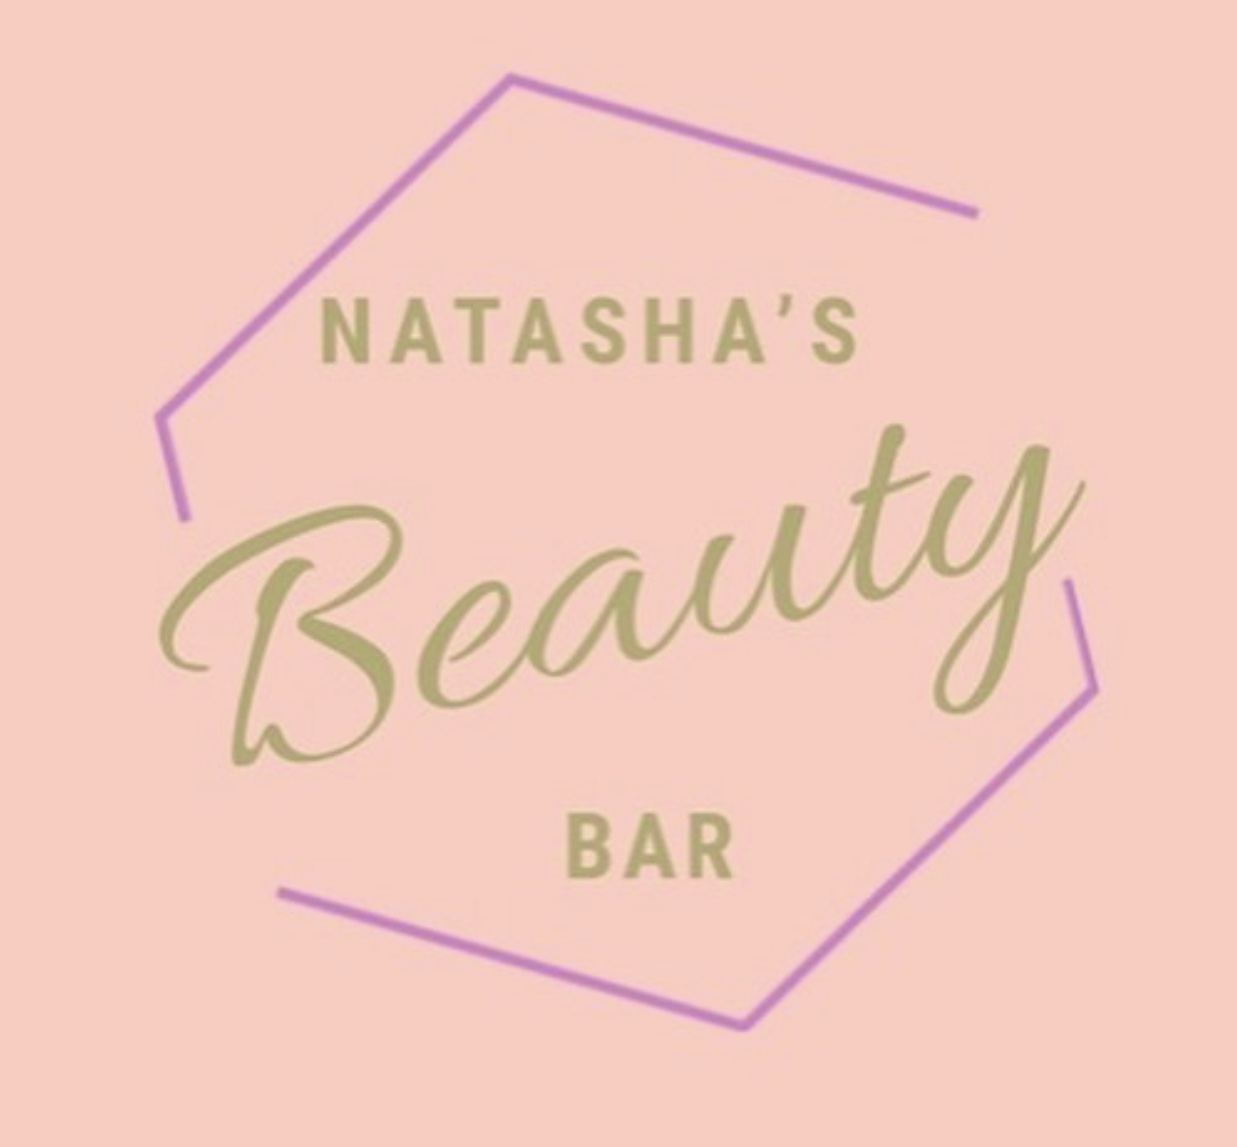 Natashas Beauty Bar